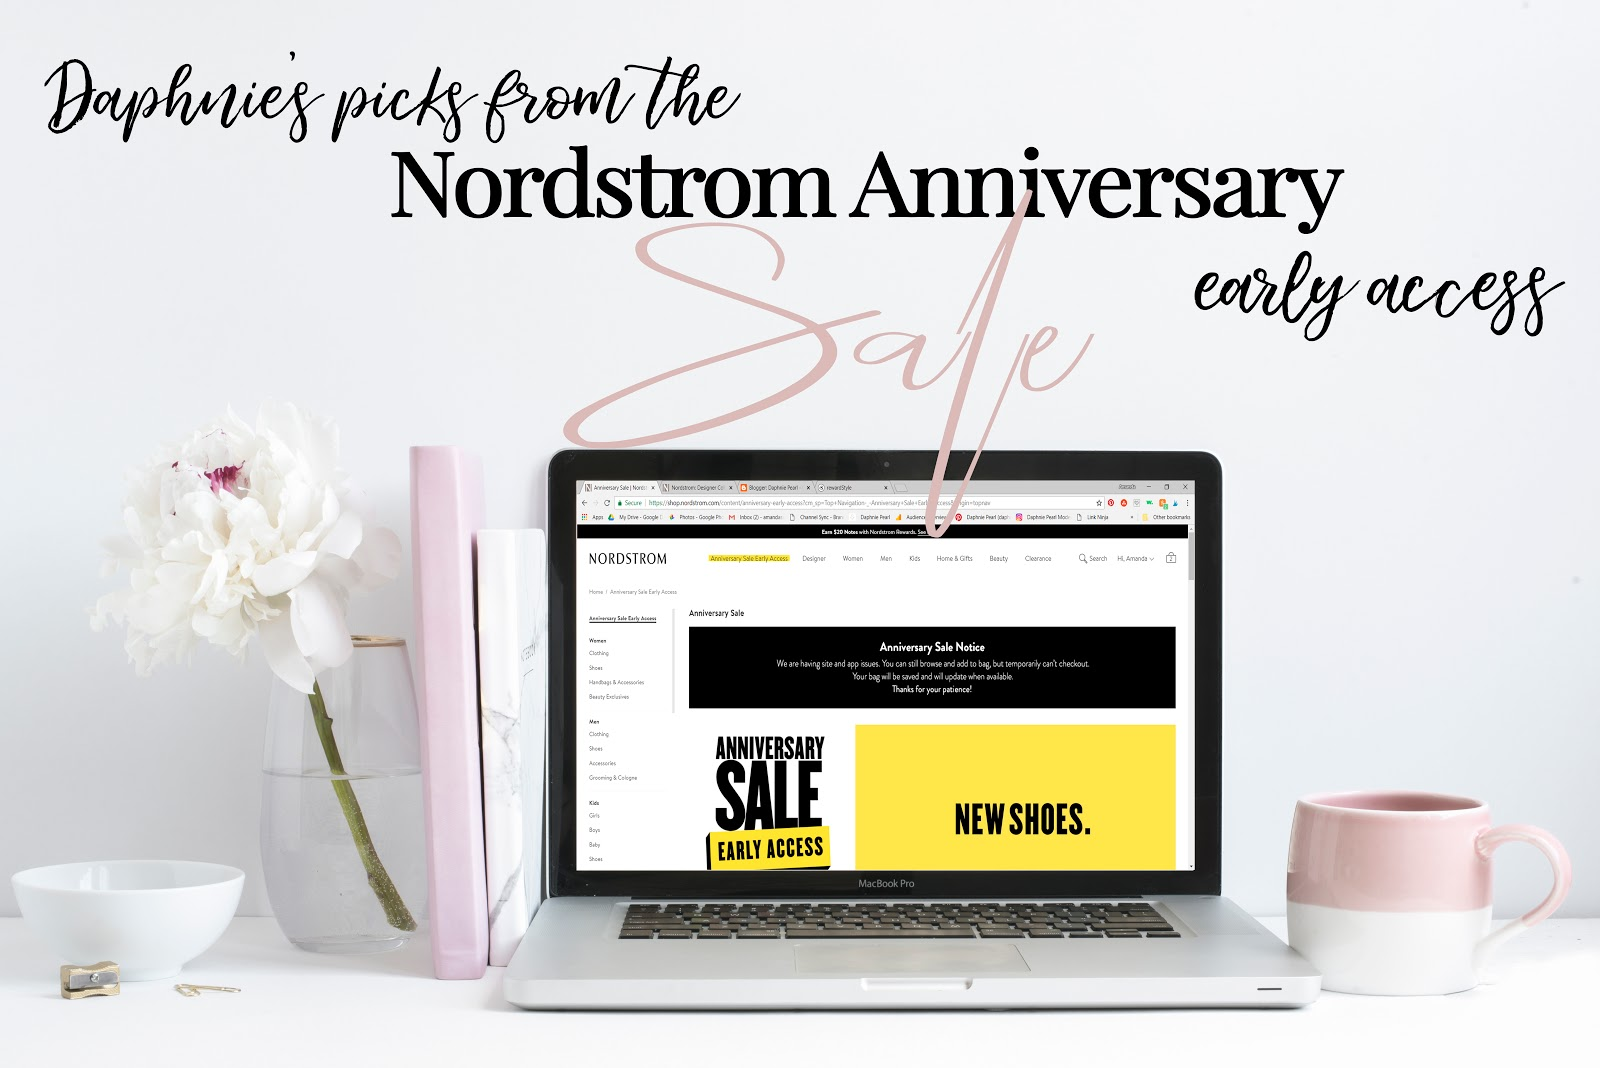 Daphnie's Picks from the Nordstrom Anniversary Sale Early Access Back to School Fall Shopping Outfit Idea Fashion